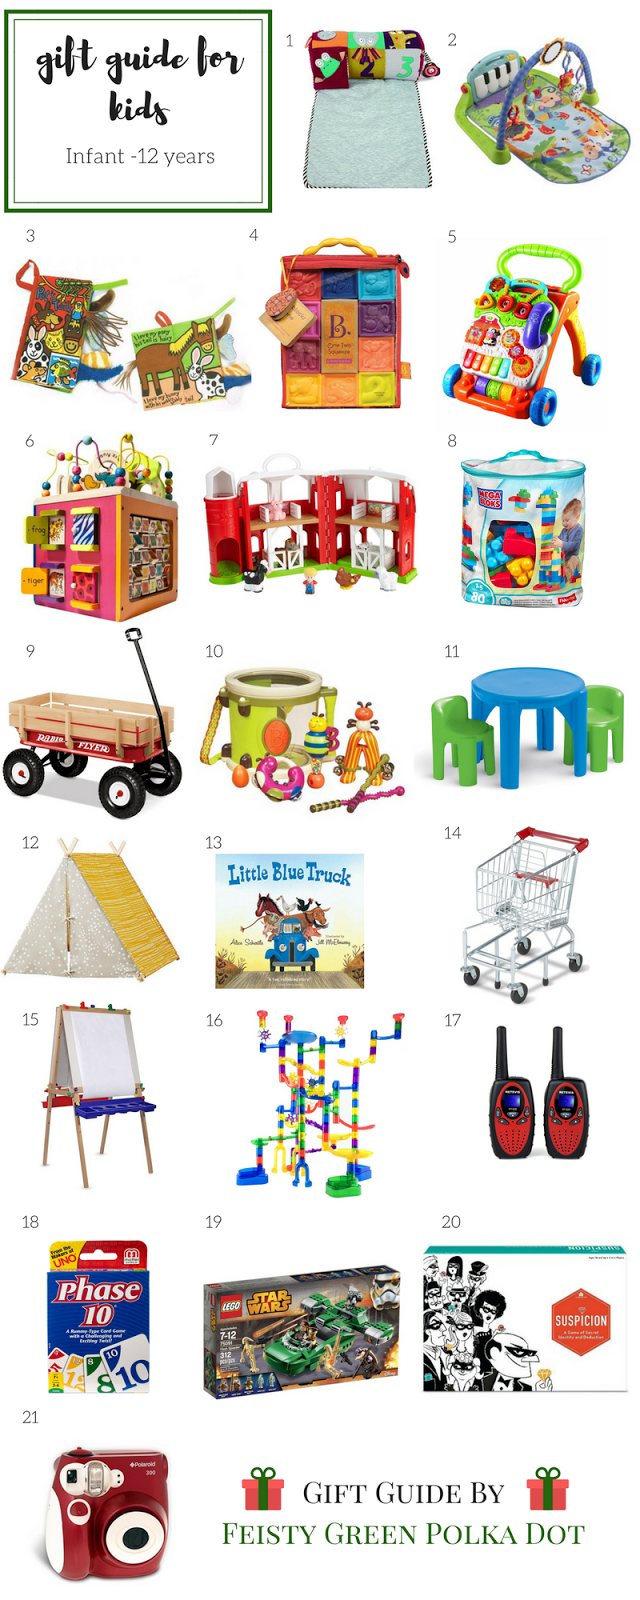 Gift Guide for Kids Infant Through 12 Years Old